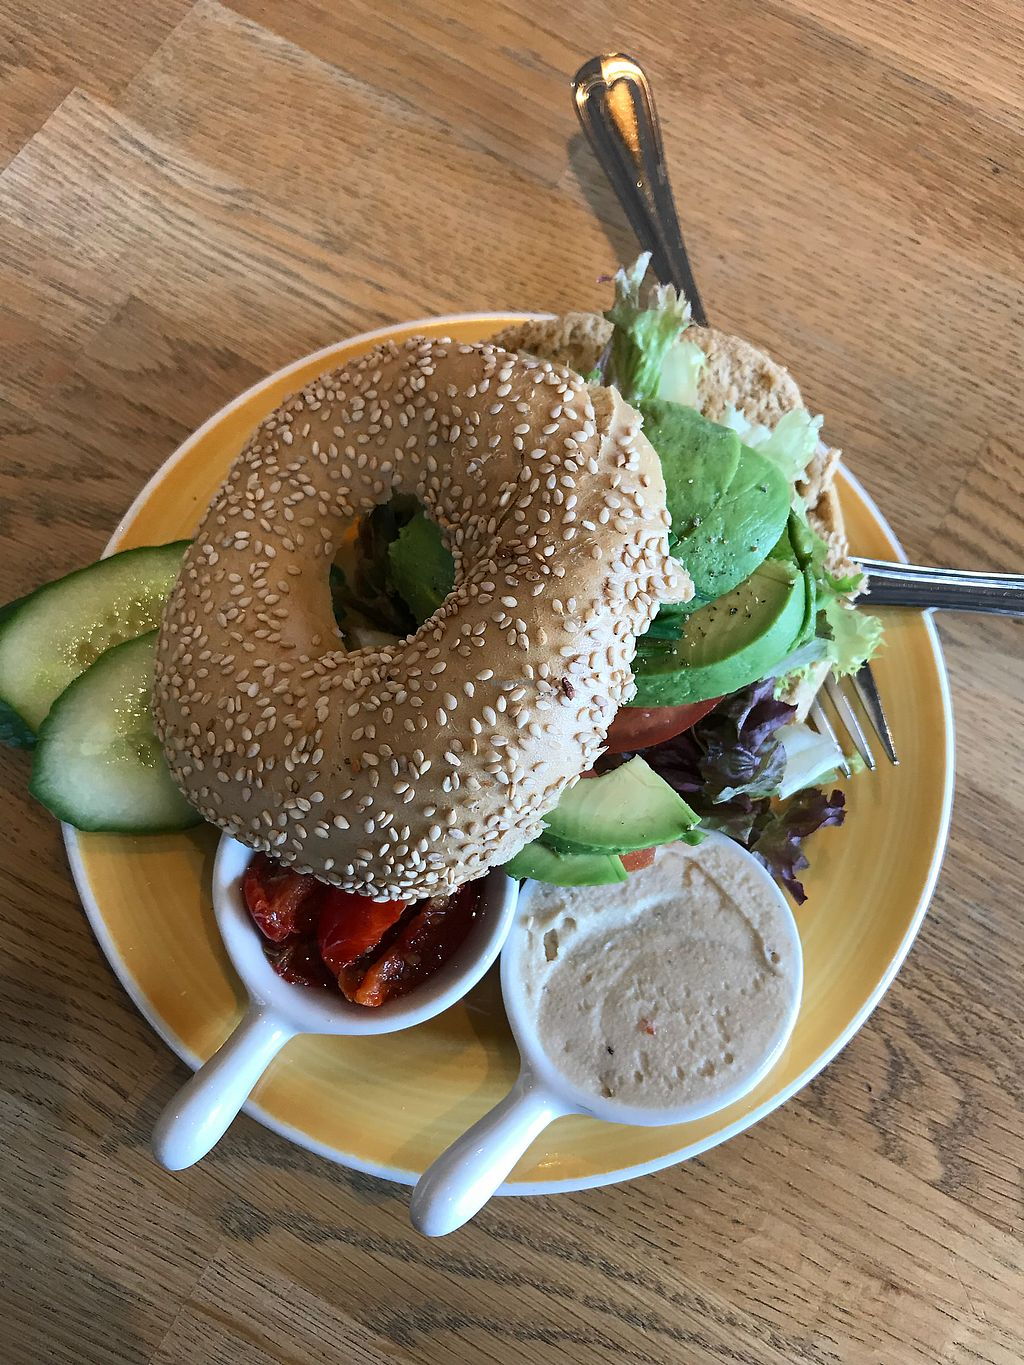 """Photo of Bagels & Beans  by <a href=""""/members/profile/TrangDang"""">TrangDang</a> <br/>Bagel <br/> April 9, 2018  - <a href='/contact/abuse/image/67869/382926'>Report</a>"""